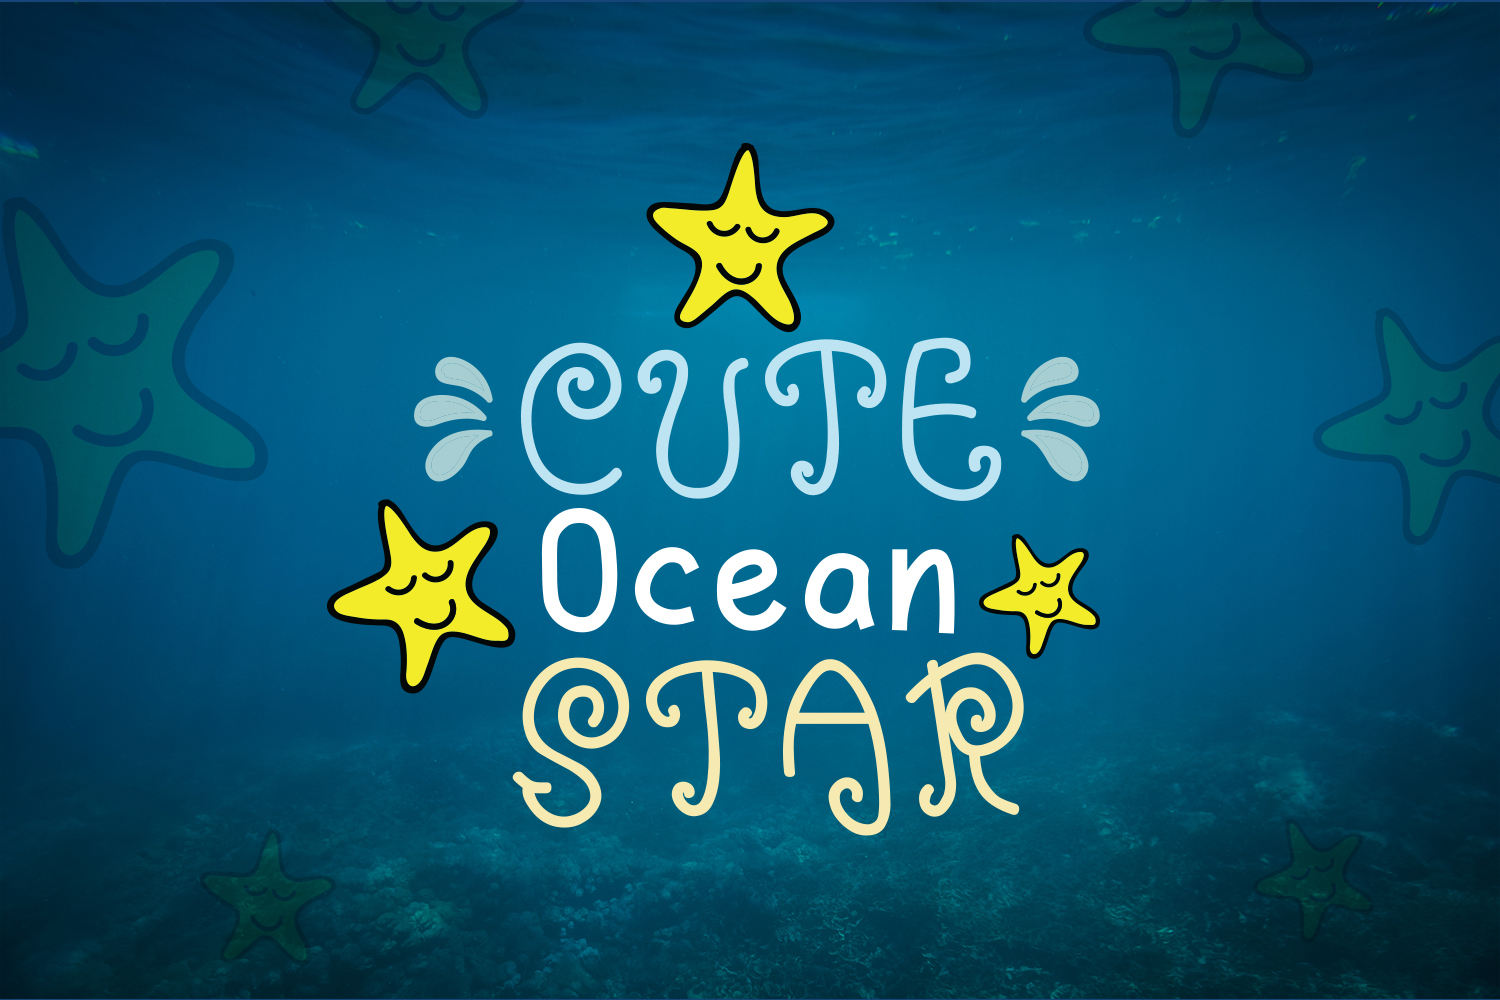 Blue Ocean - Cute and Funny Font example image 3